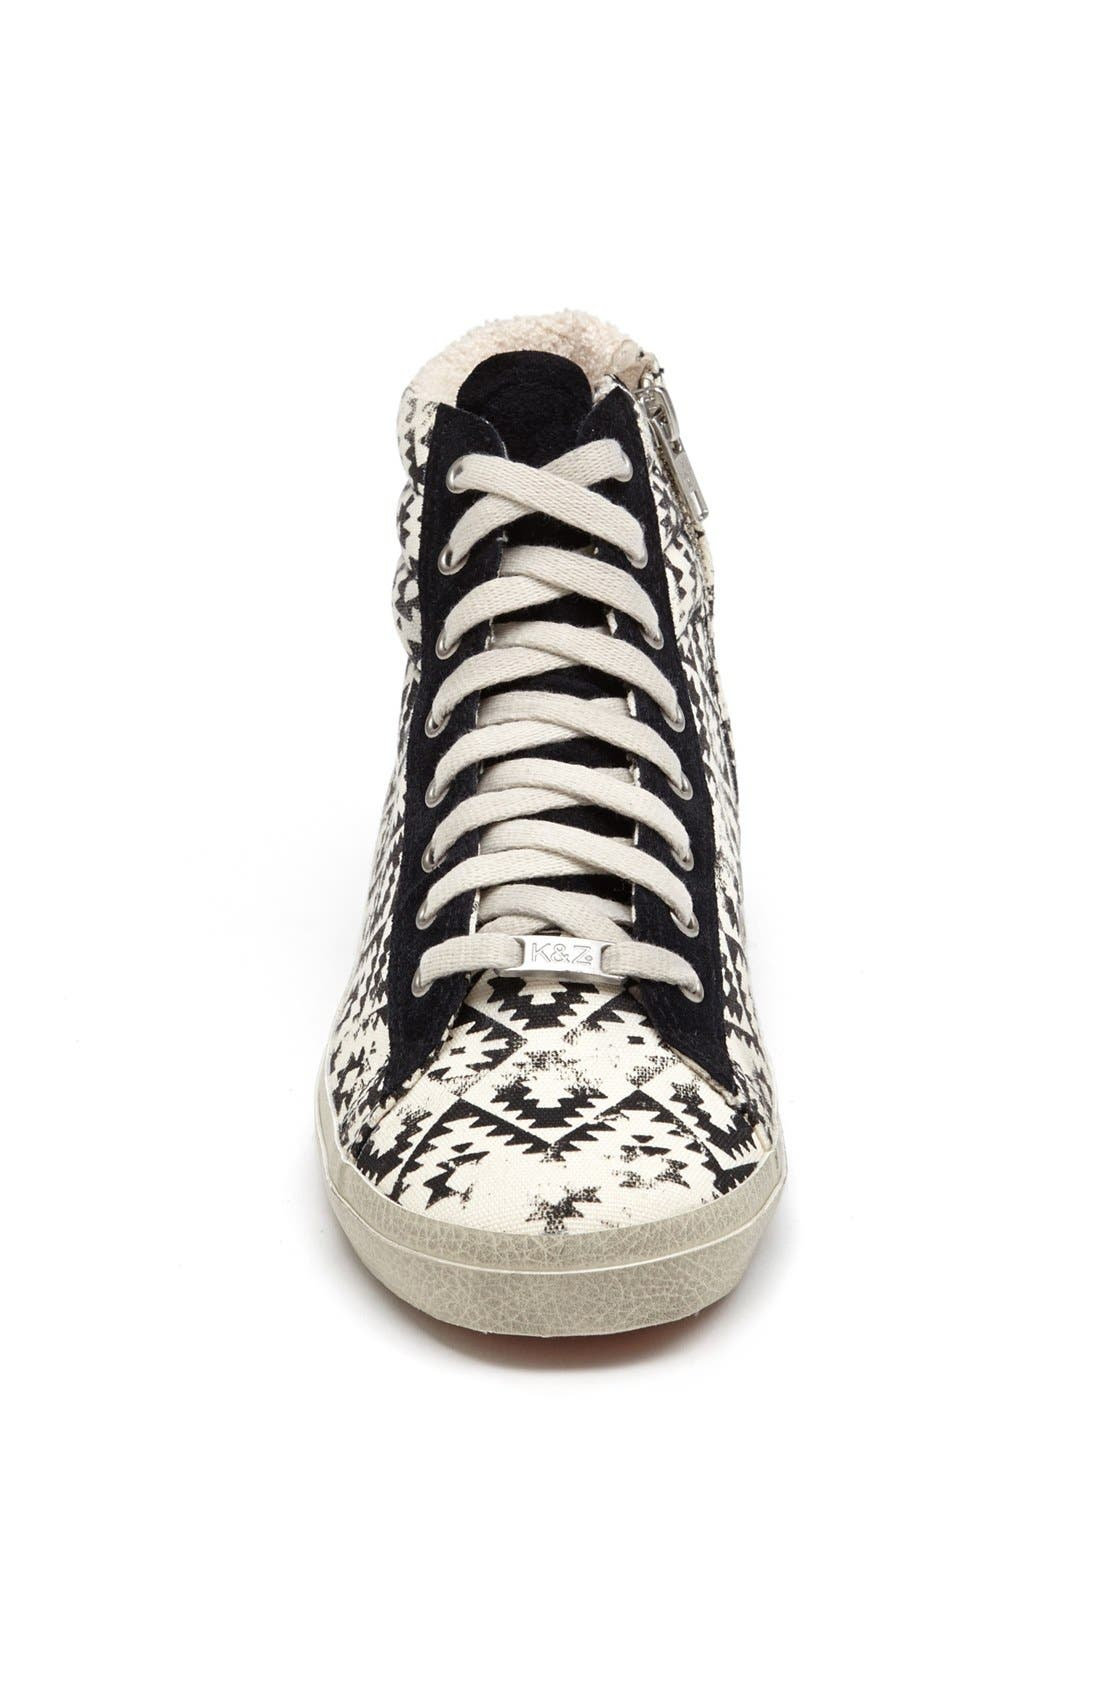 Alternate Image 3  - Kim & Zozi 'Gypster' High Top Sneaker